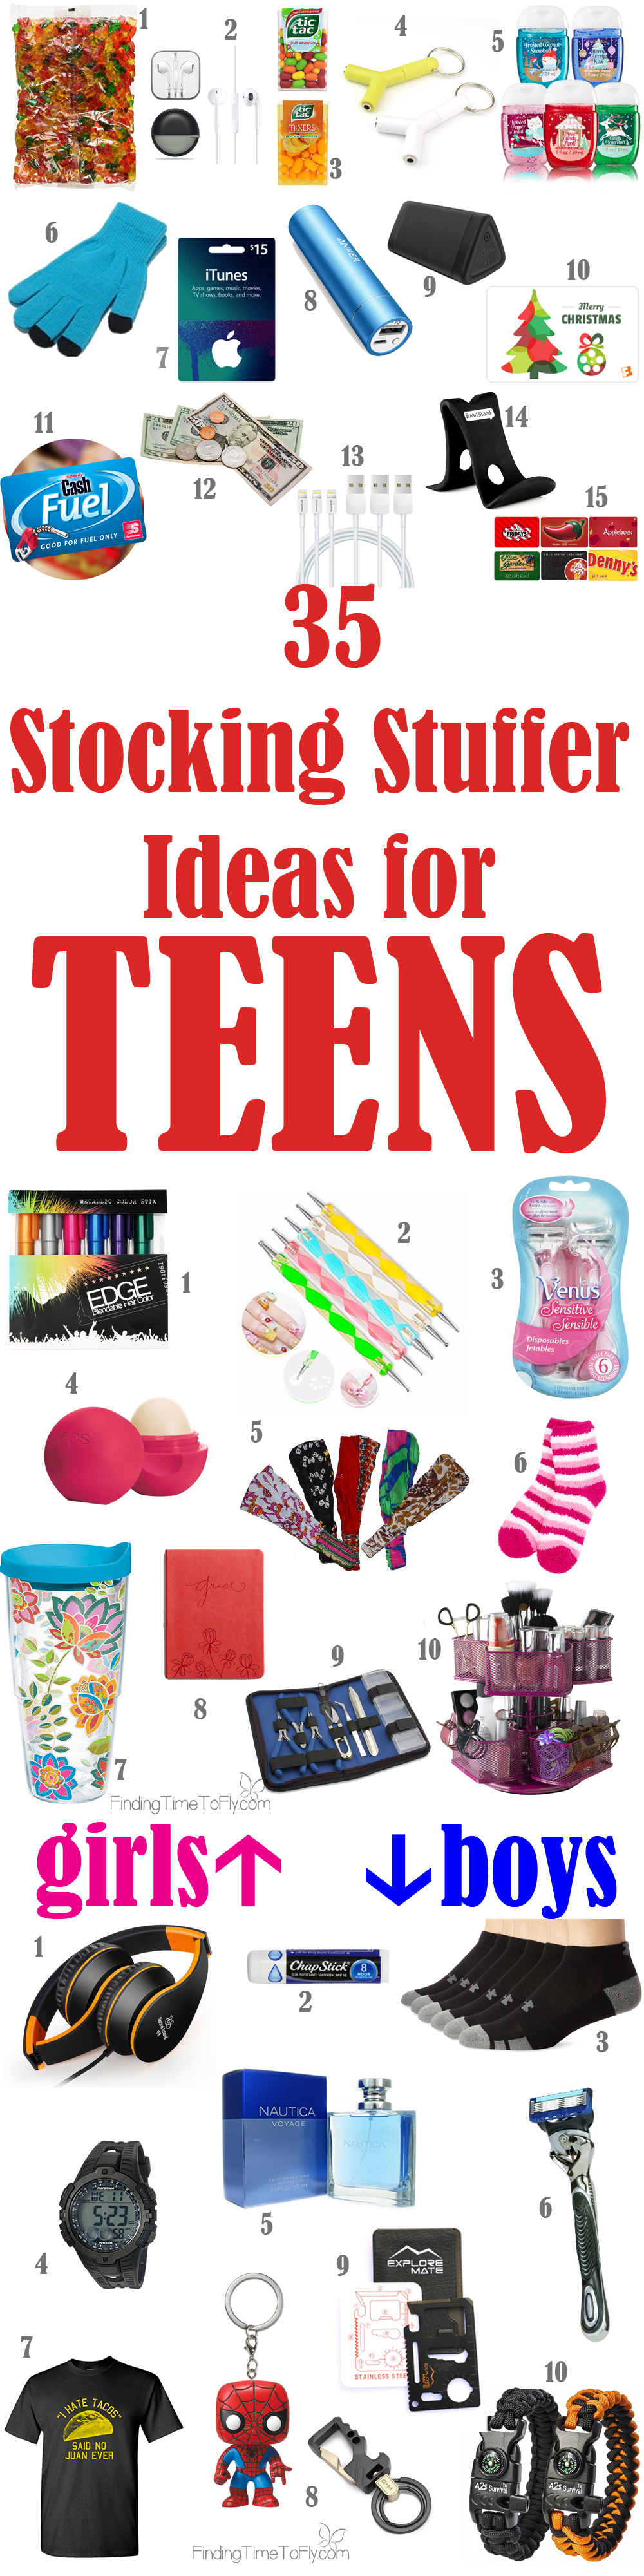 saving this list of stocking stuffer ideas for teenagers what a great list for teens